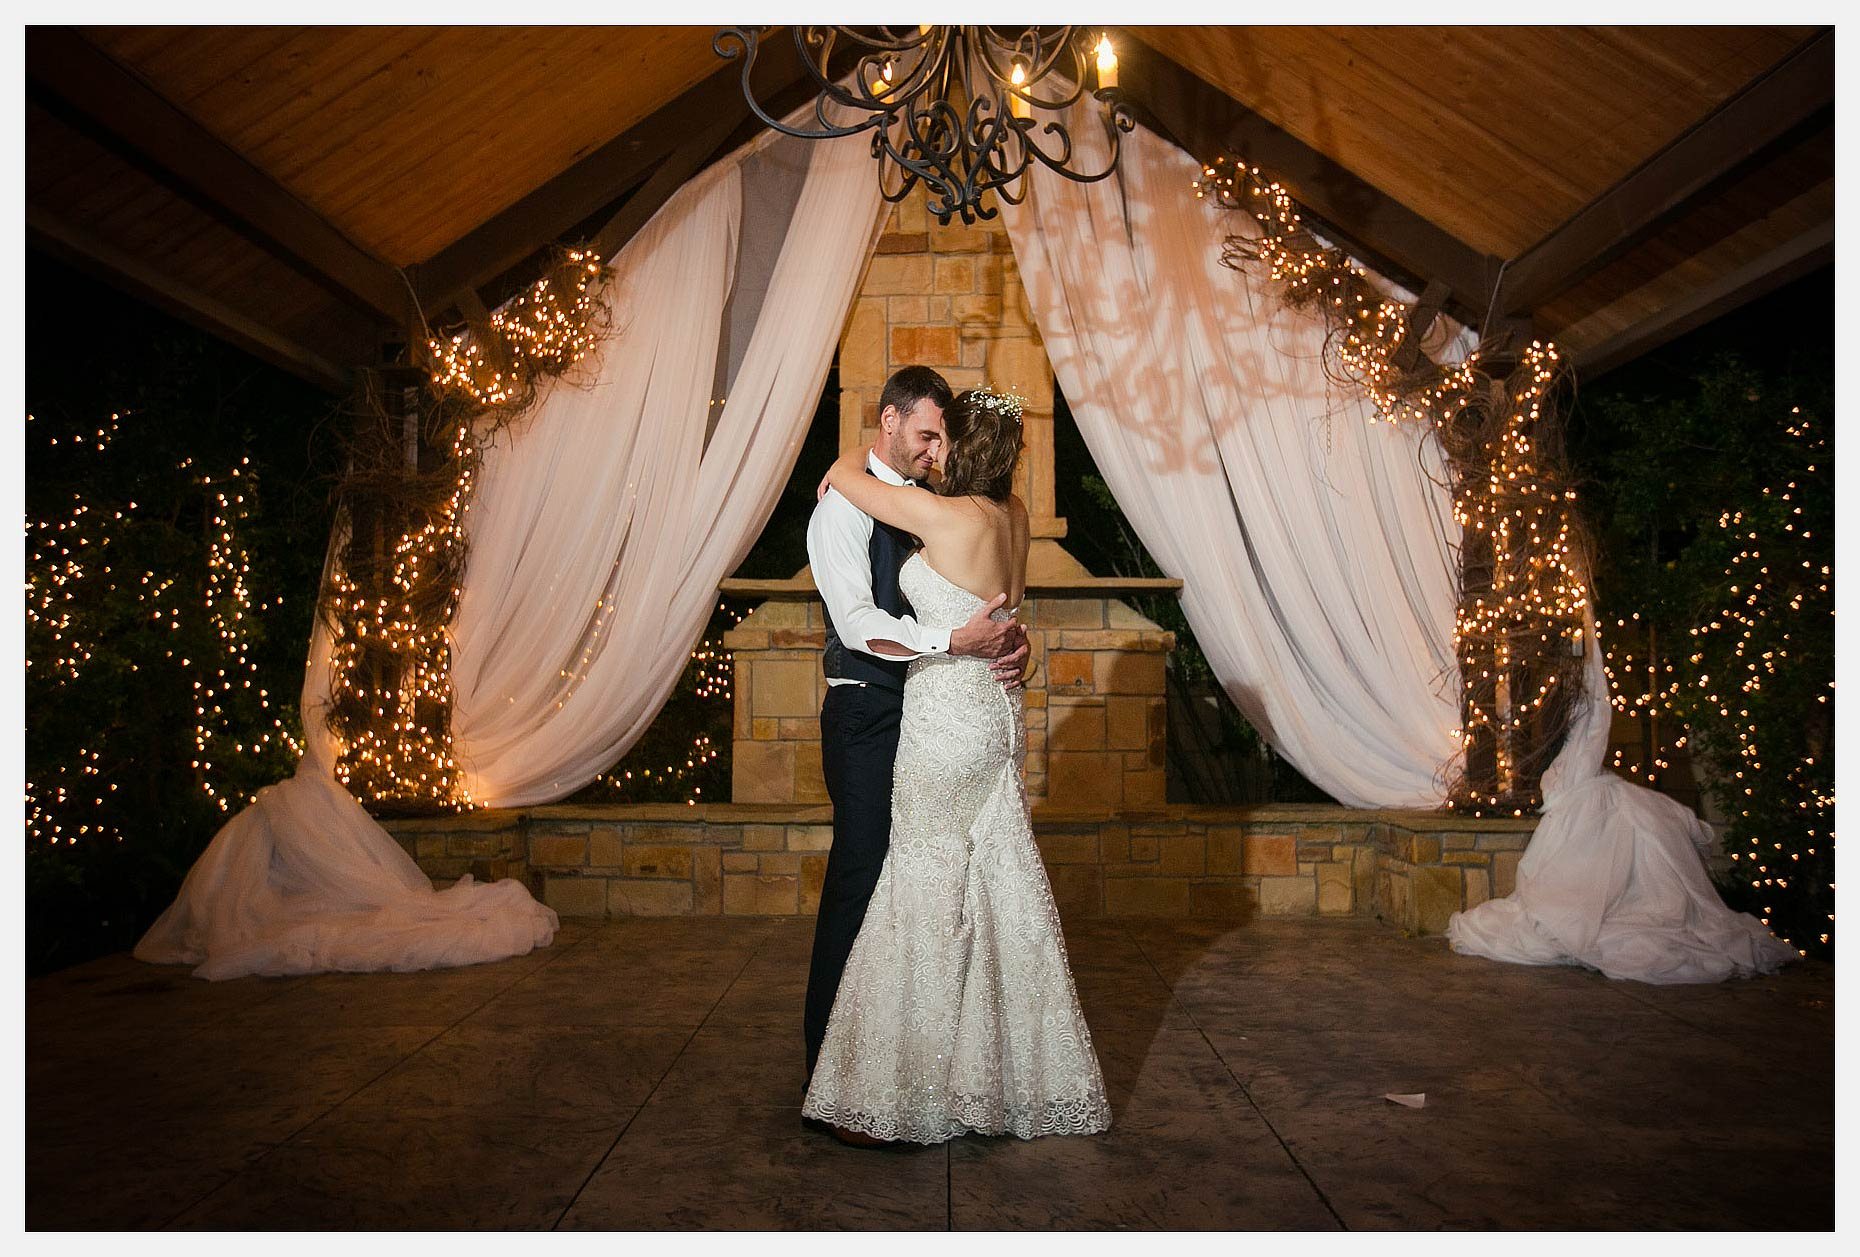 Madison-Carver-Wedding-by-Stephen-Masker-Photography-0184